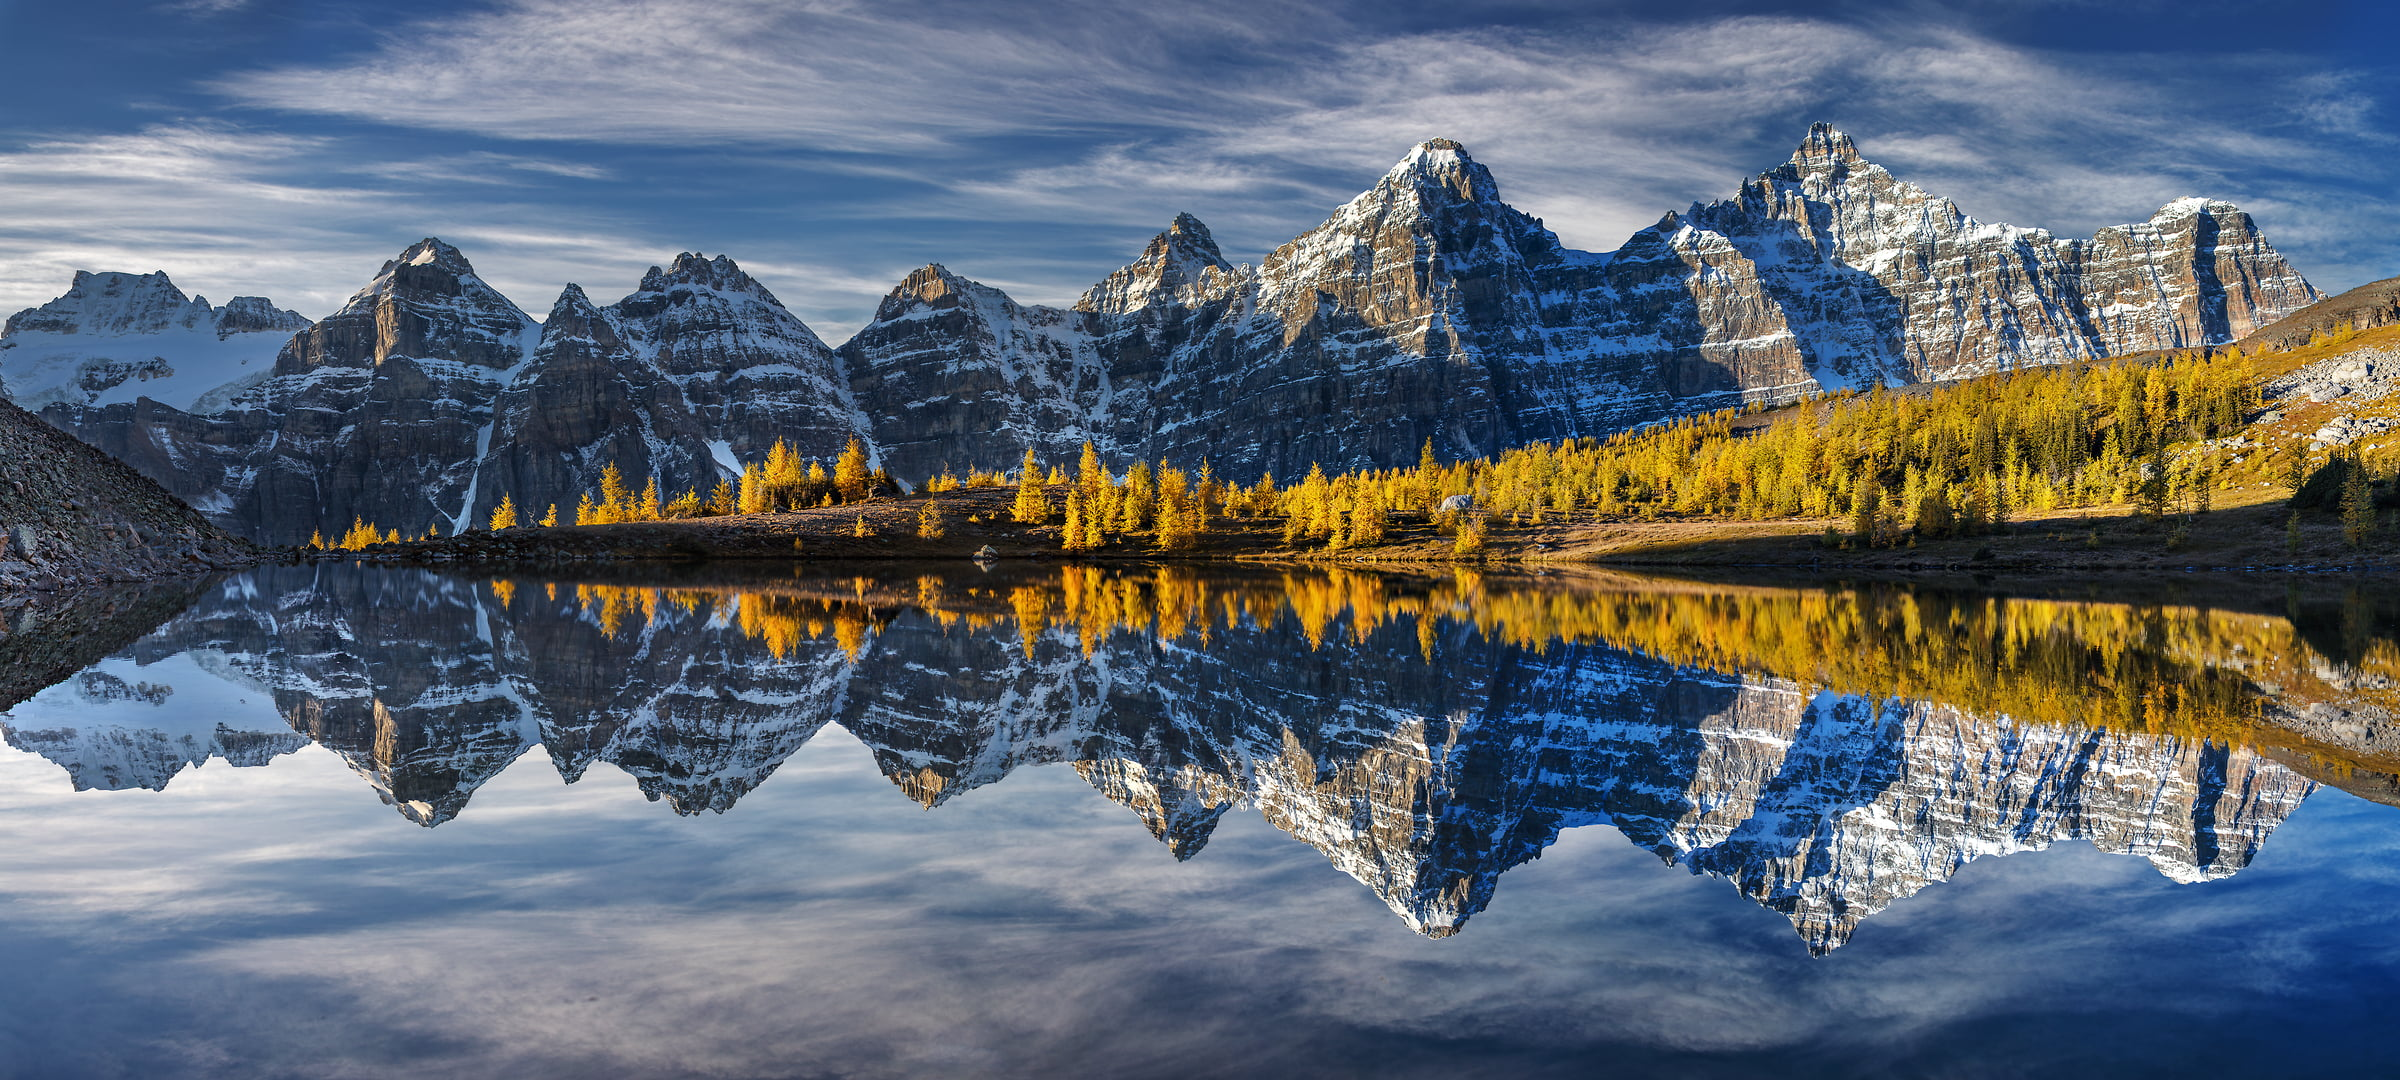 453 megapixels! A very high resolution, large-format VAST photo print of mountains, autumn trees, and a lake with reflection; fine art landscape photo created by Chris Collacott in Banff National Park, Alberta, Canada